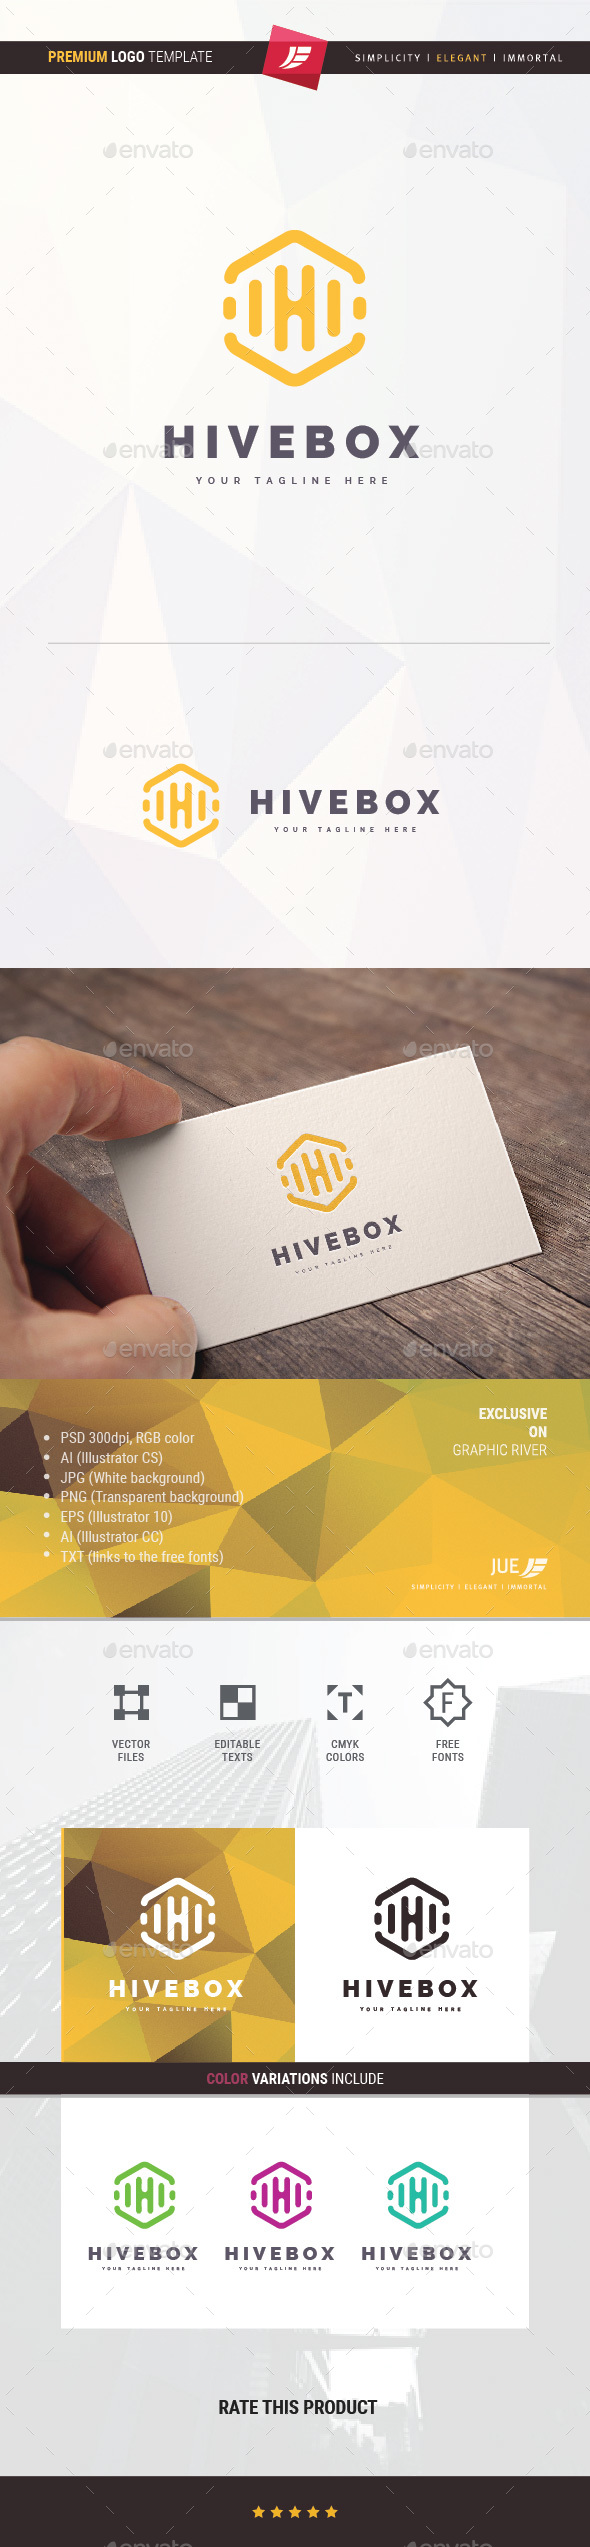 Hive Box Logo - Objects Logo Templates